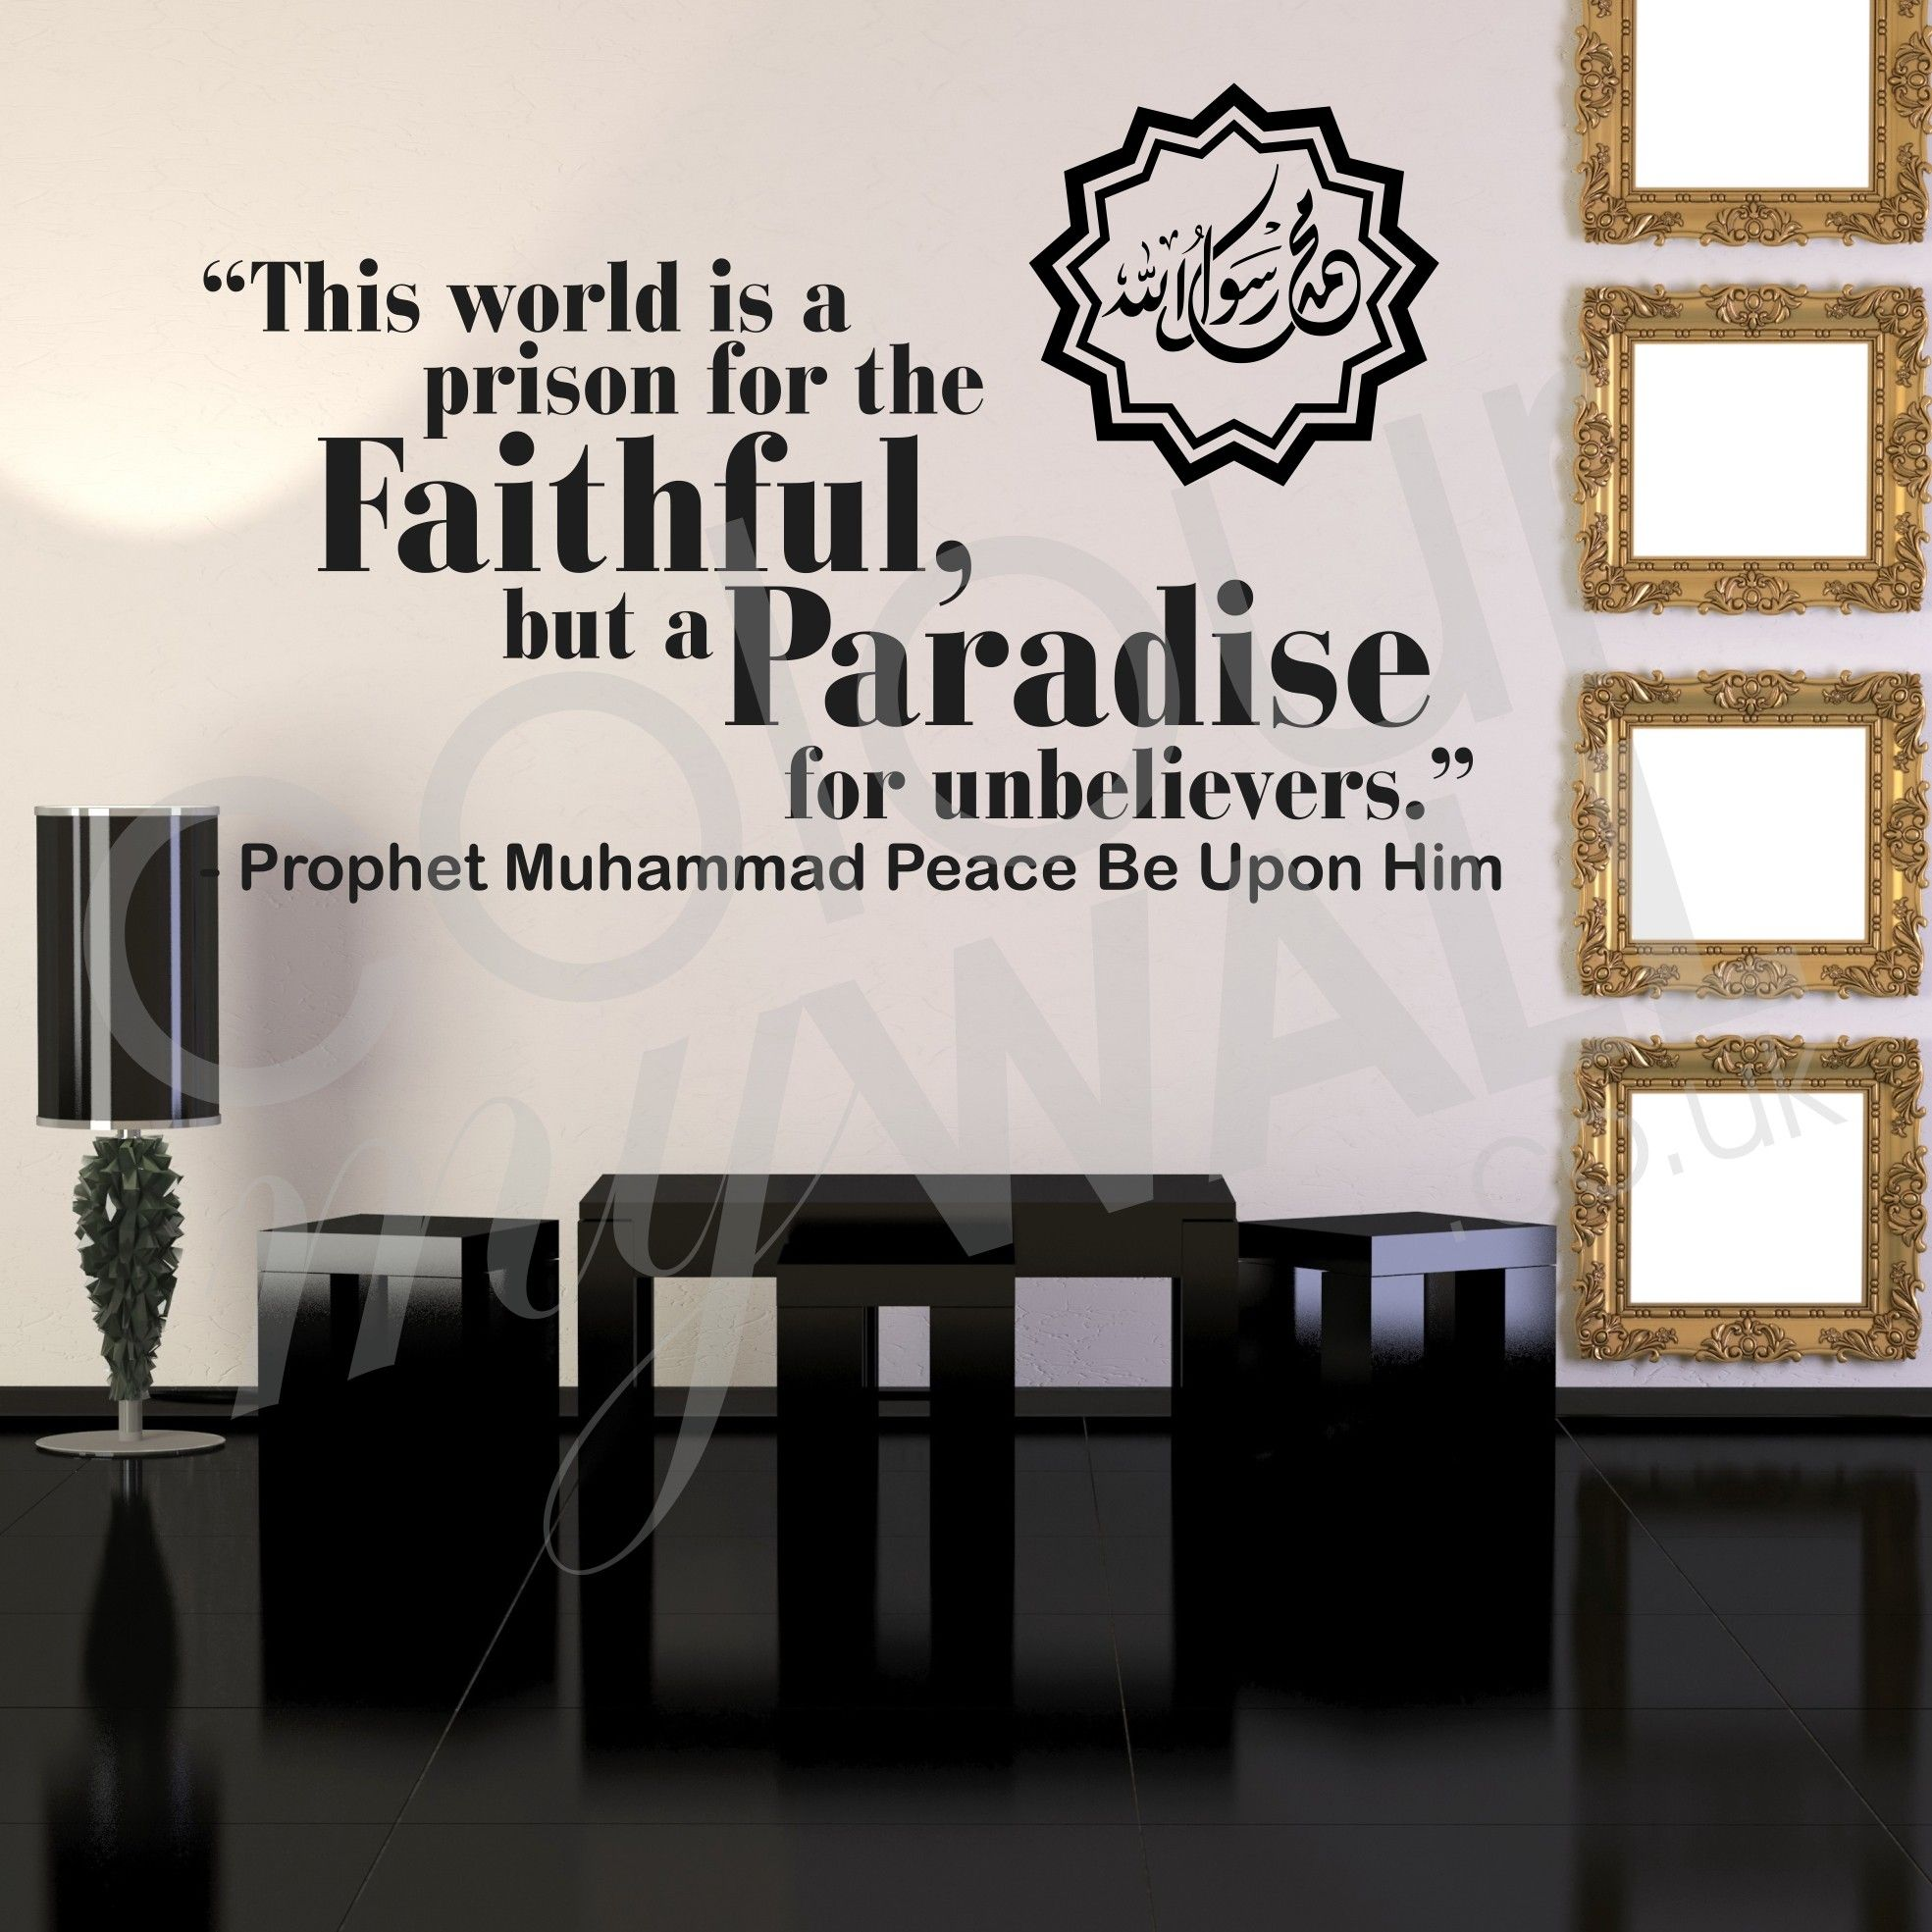 Take A Deeper Look Into This Hadith Here Onislam English Reading Islam About Muhammad He Said 494259 Where Is Your Paradiseutm Content